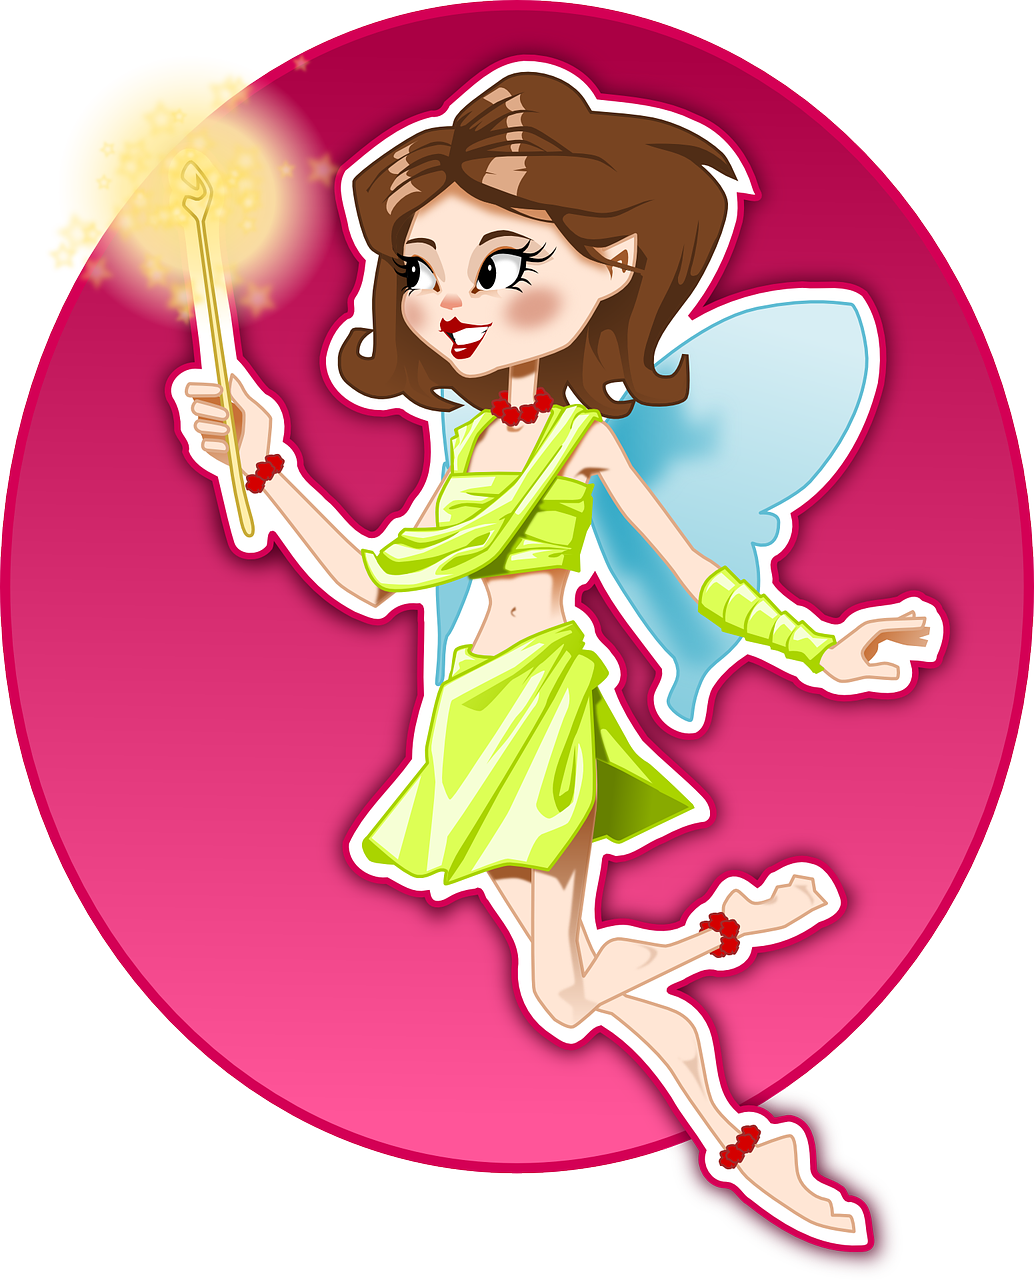 Magic clipart tooth fairy. Fly transparent image pinterest